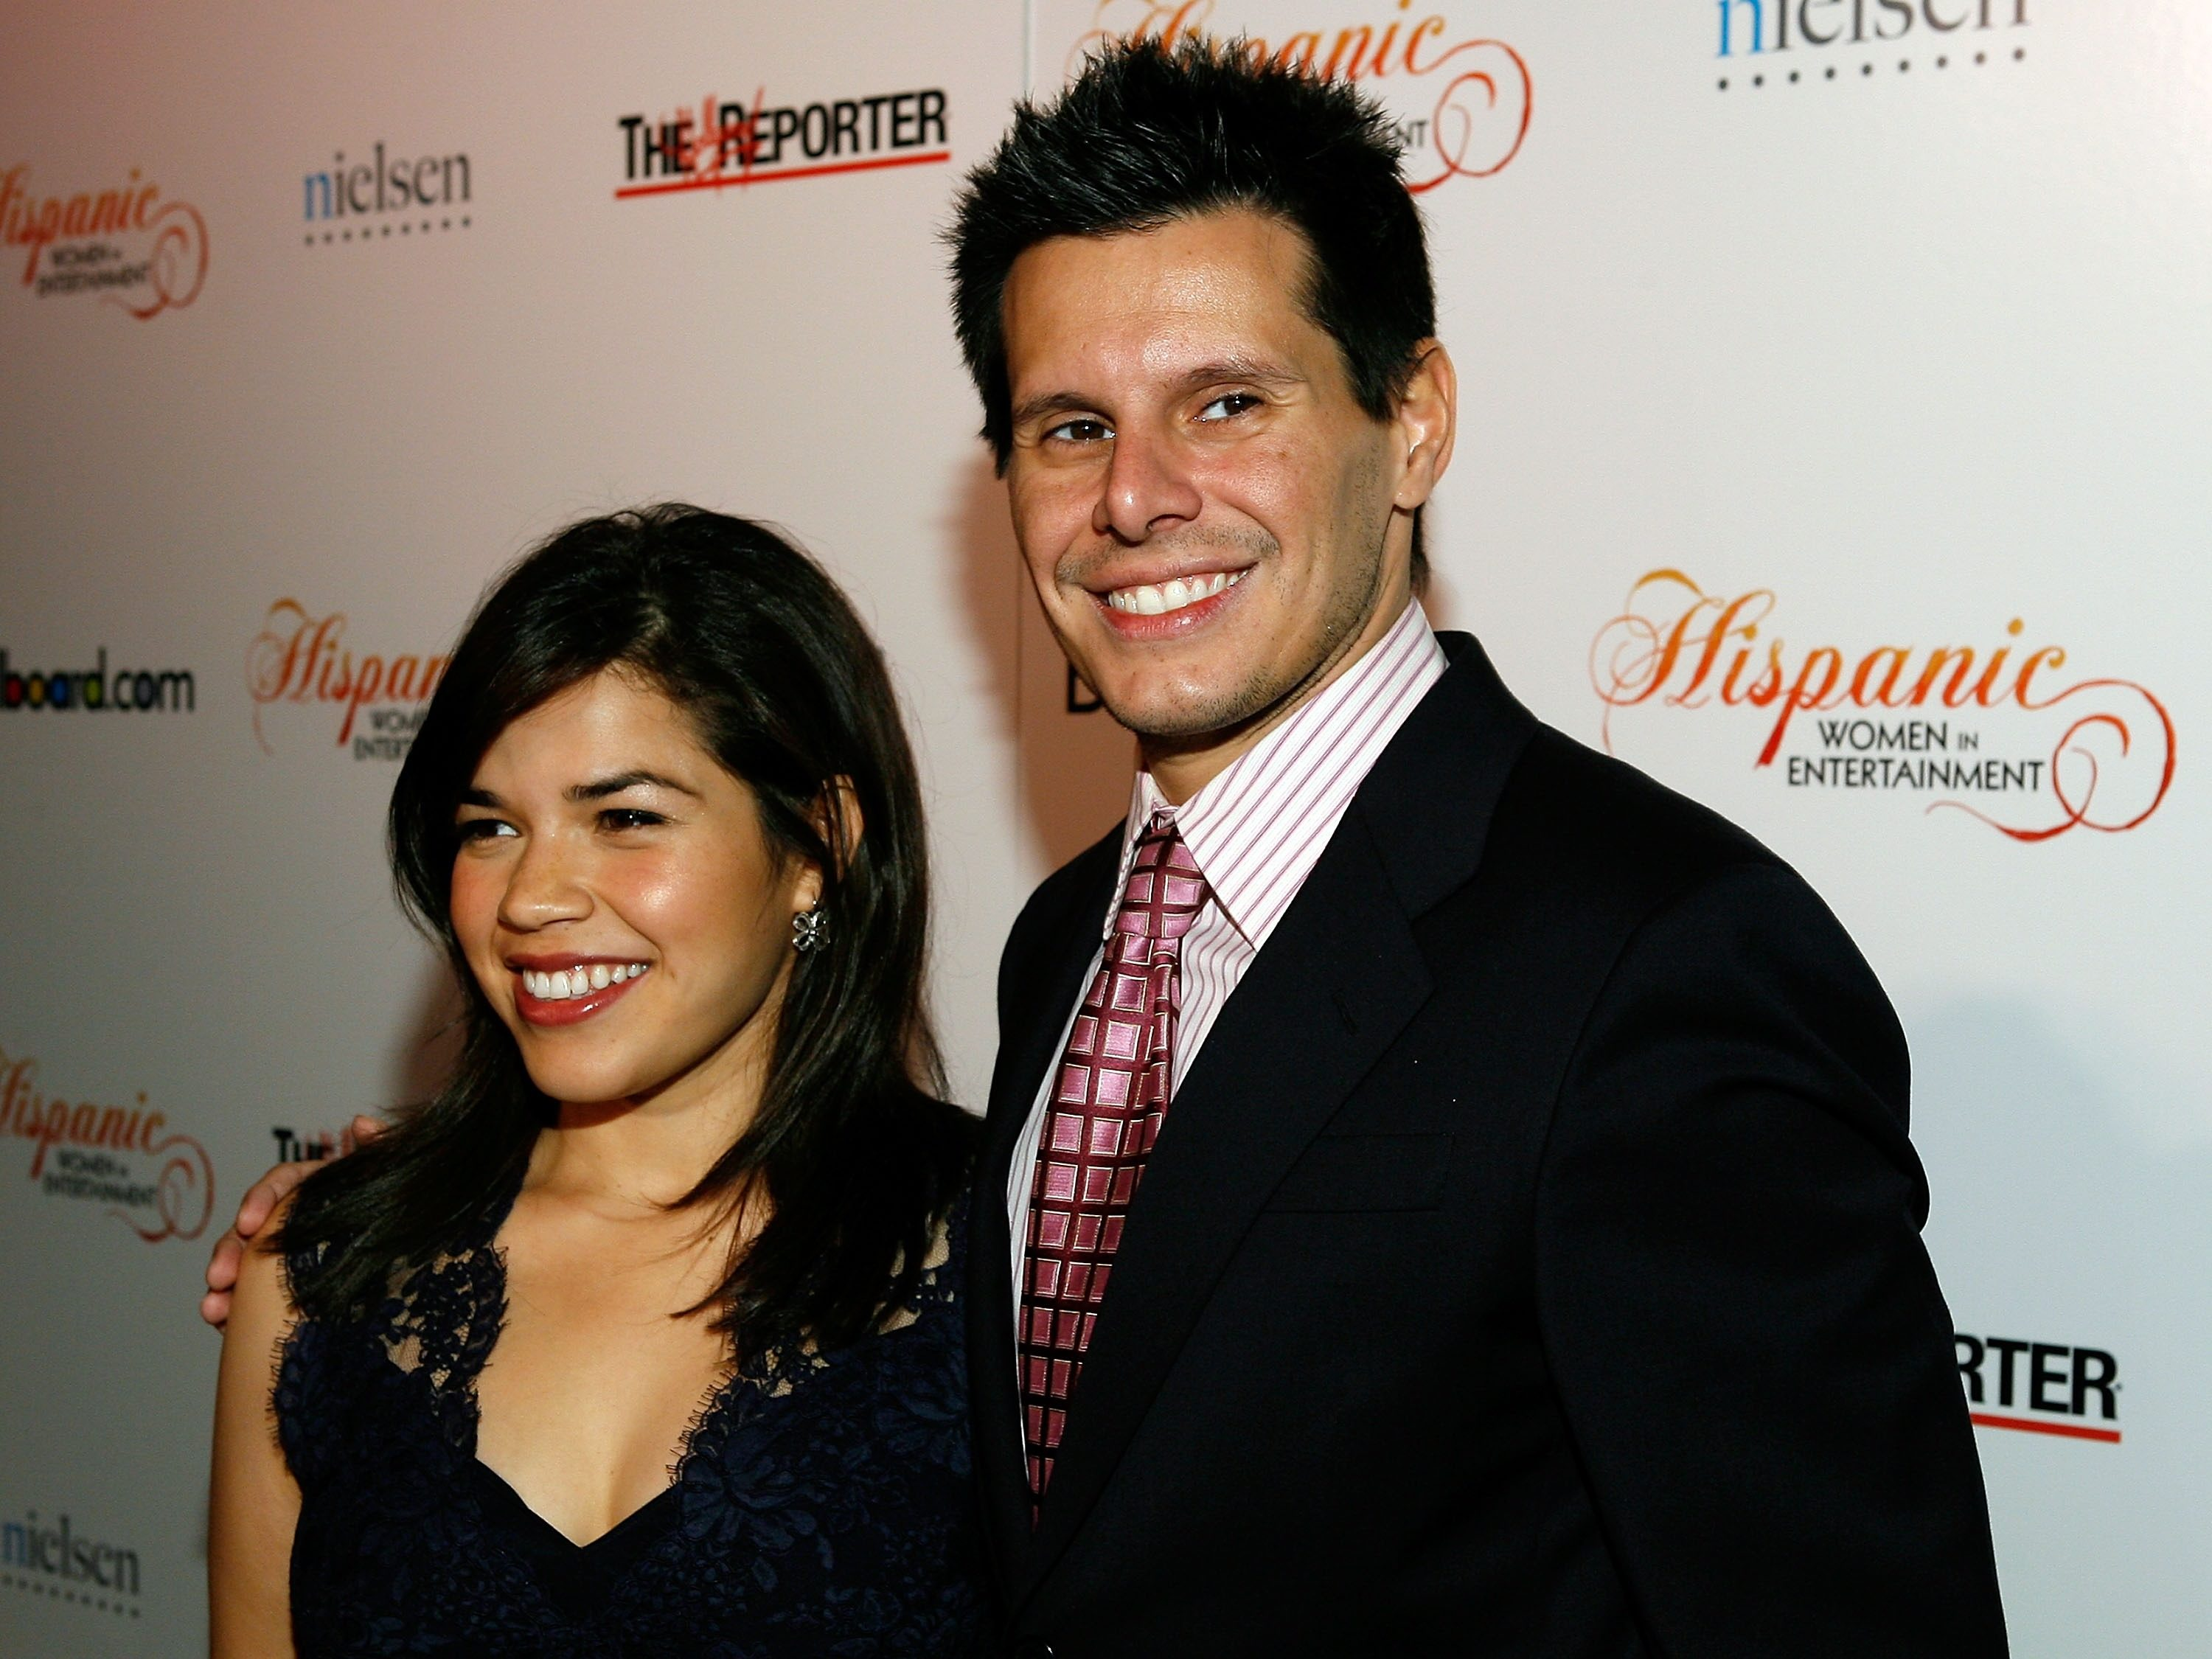 Ugly Betty creator Silvio Horta with America Ferrera